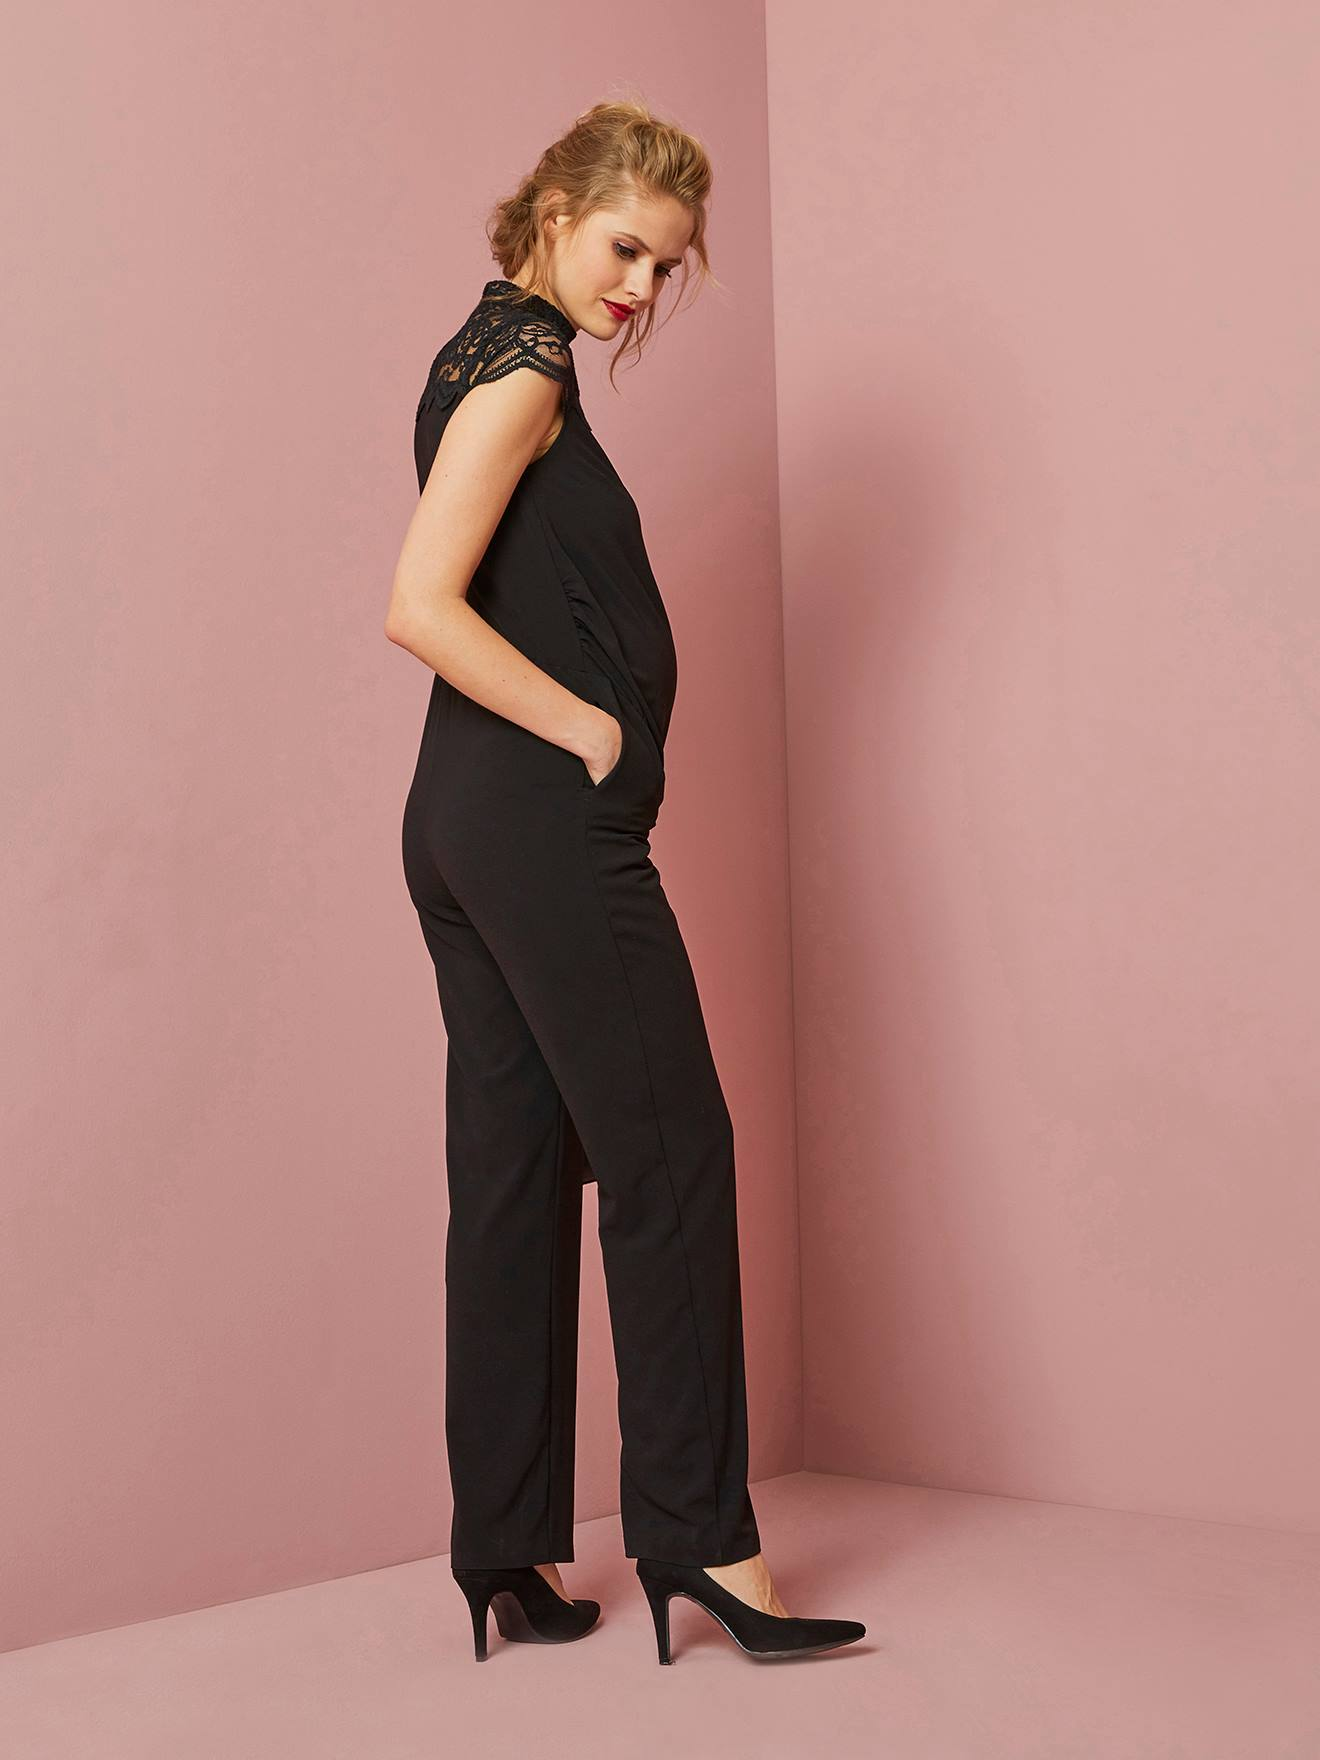 37a07705d9 Long Maternity Jumpsuit in Jersey Knit   Lace - black dark solid ...